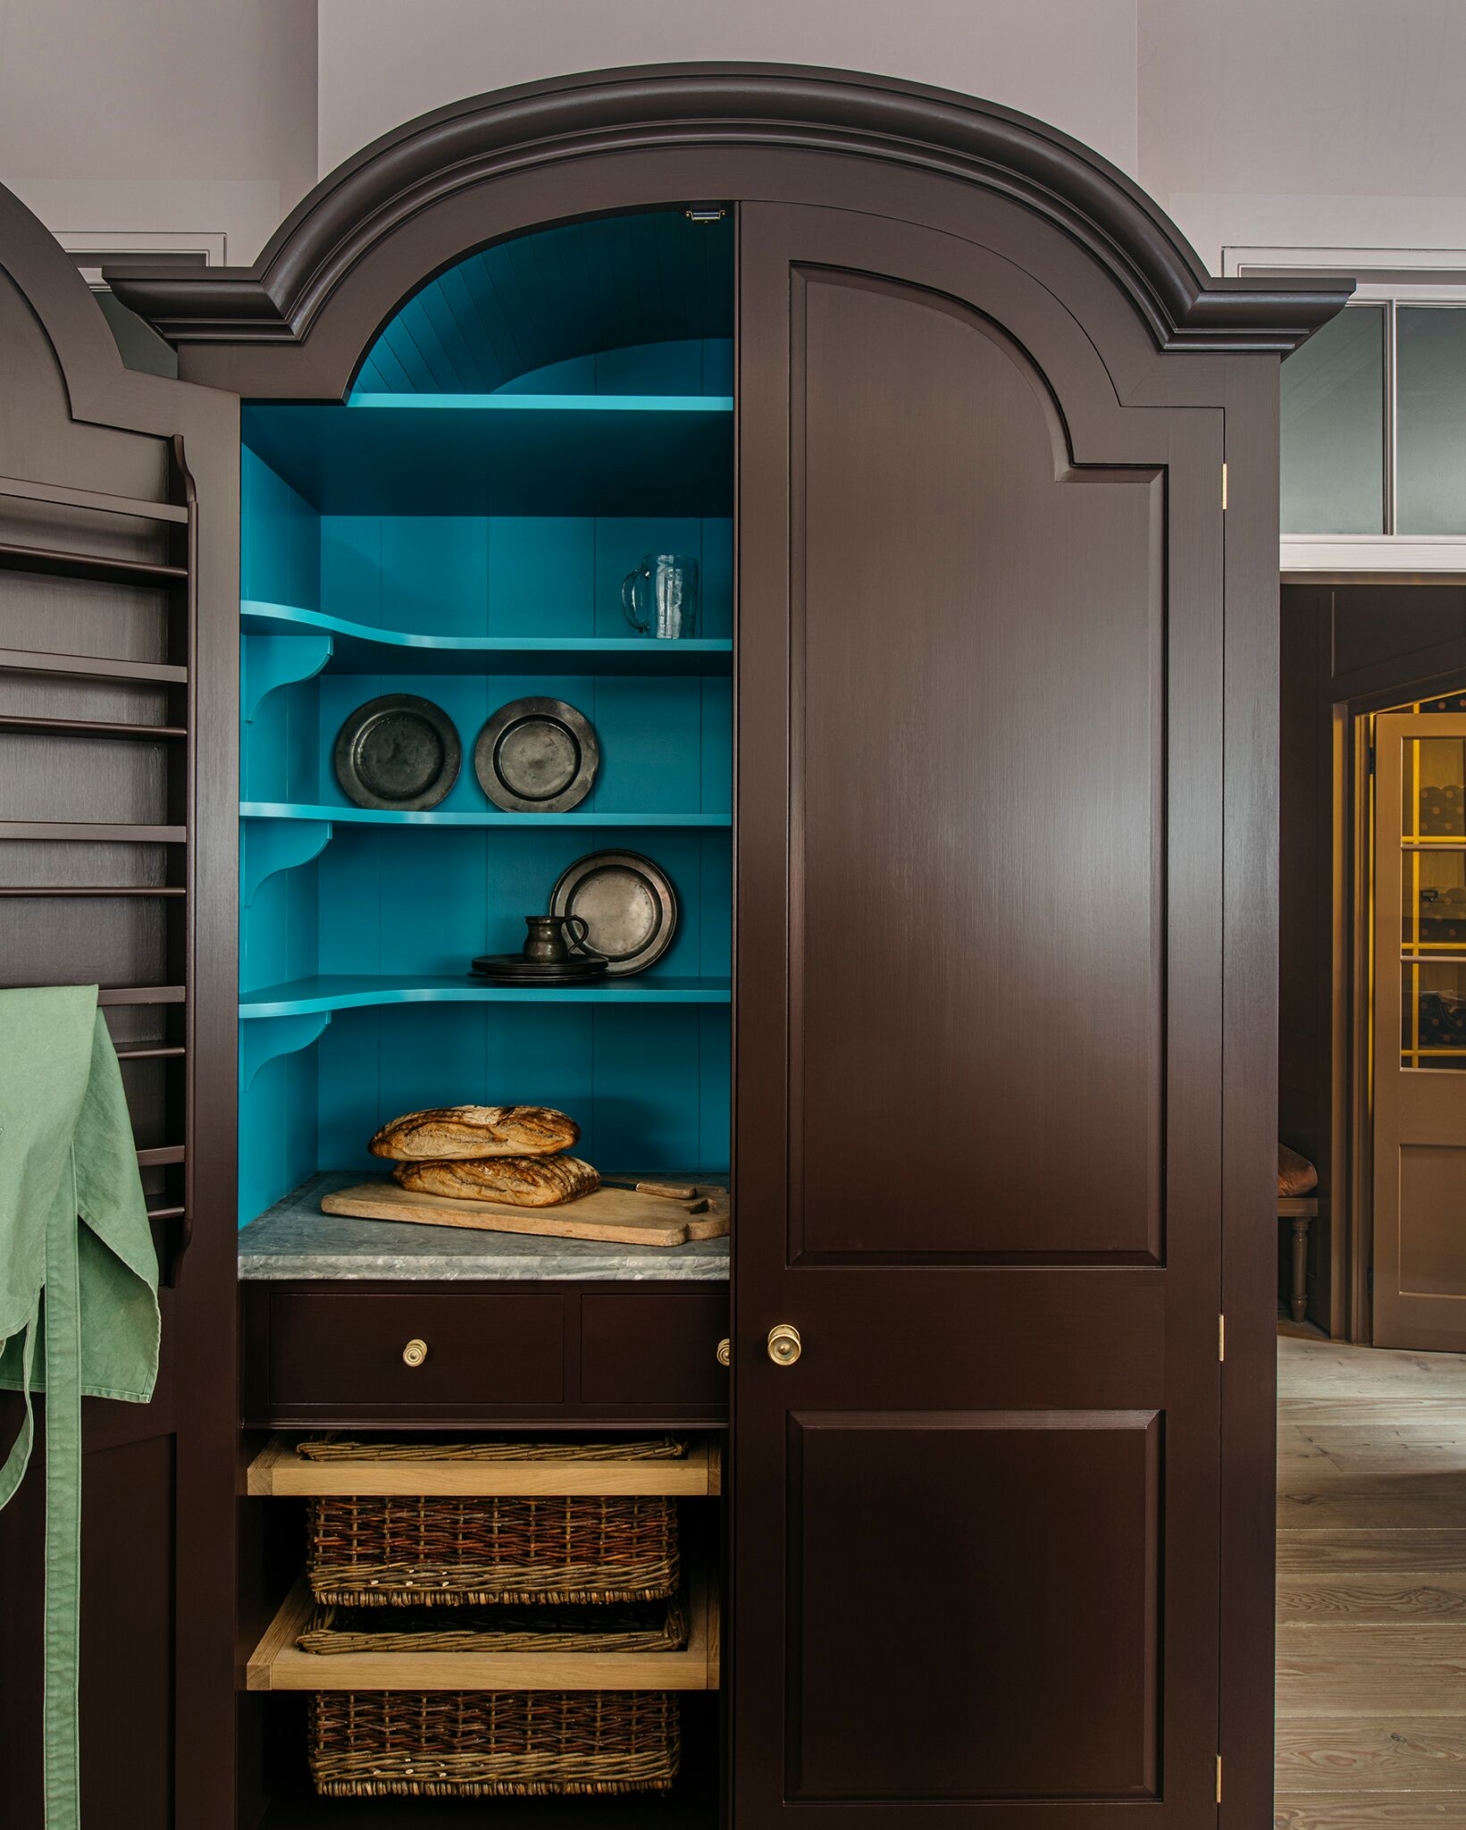 The cupboard interior is painted in Tea Caddy, which was &#8